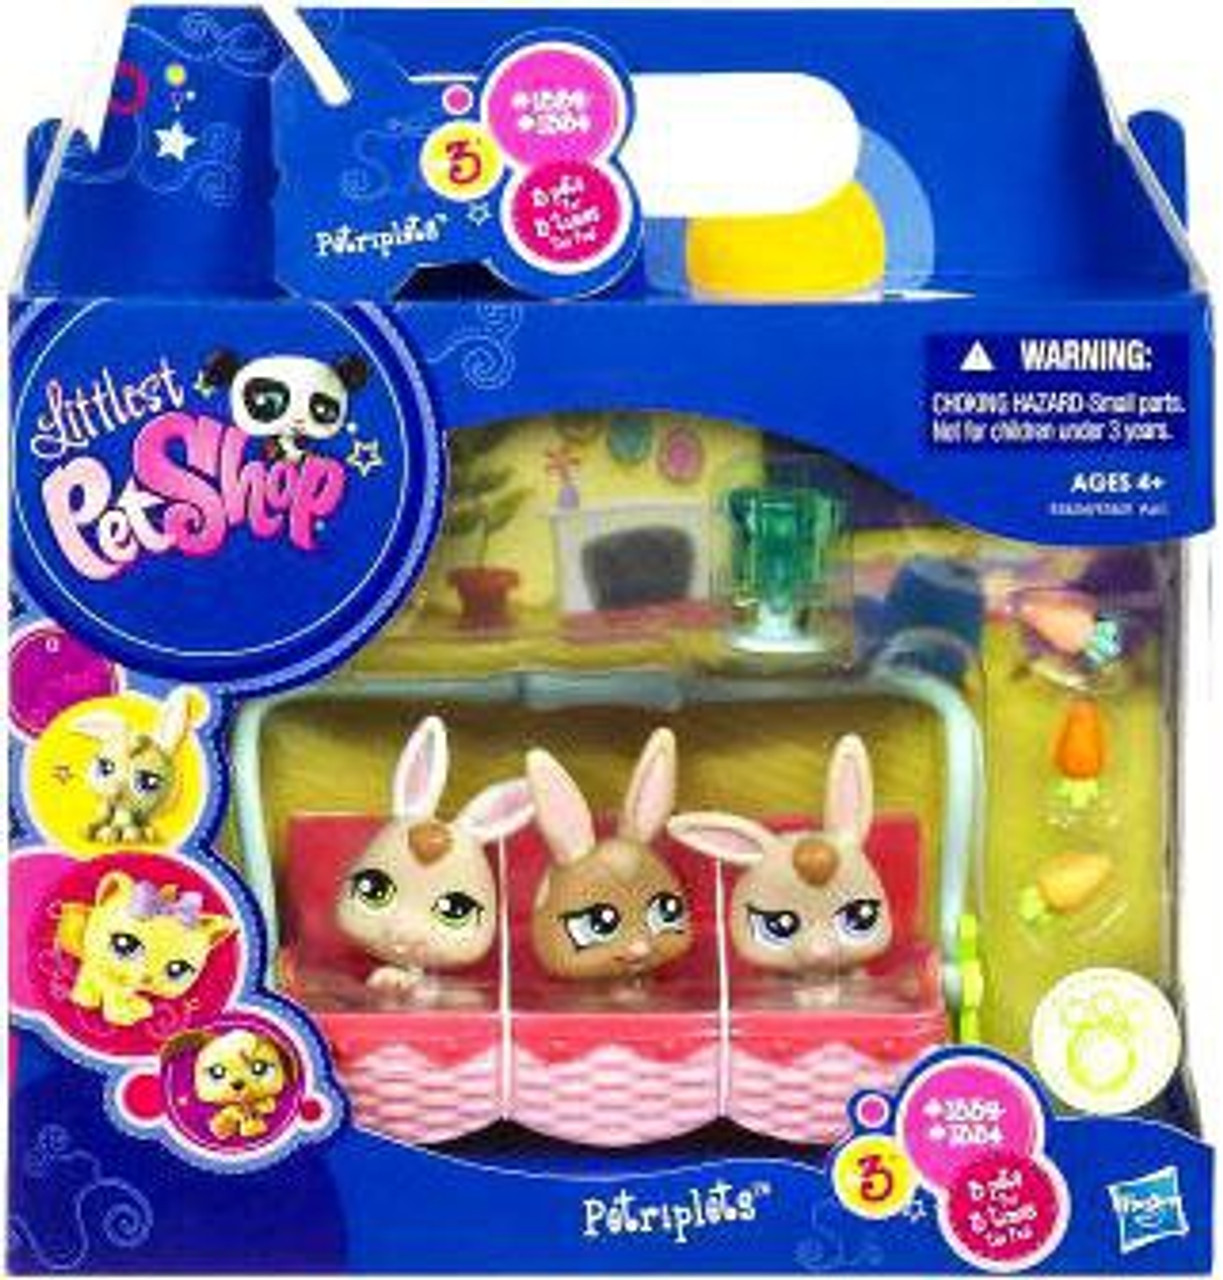 Littlest Pet Shop Petriplets Bunnies Figure 3-Pack #1662, 1663, 1664